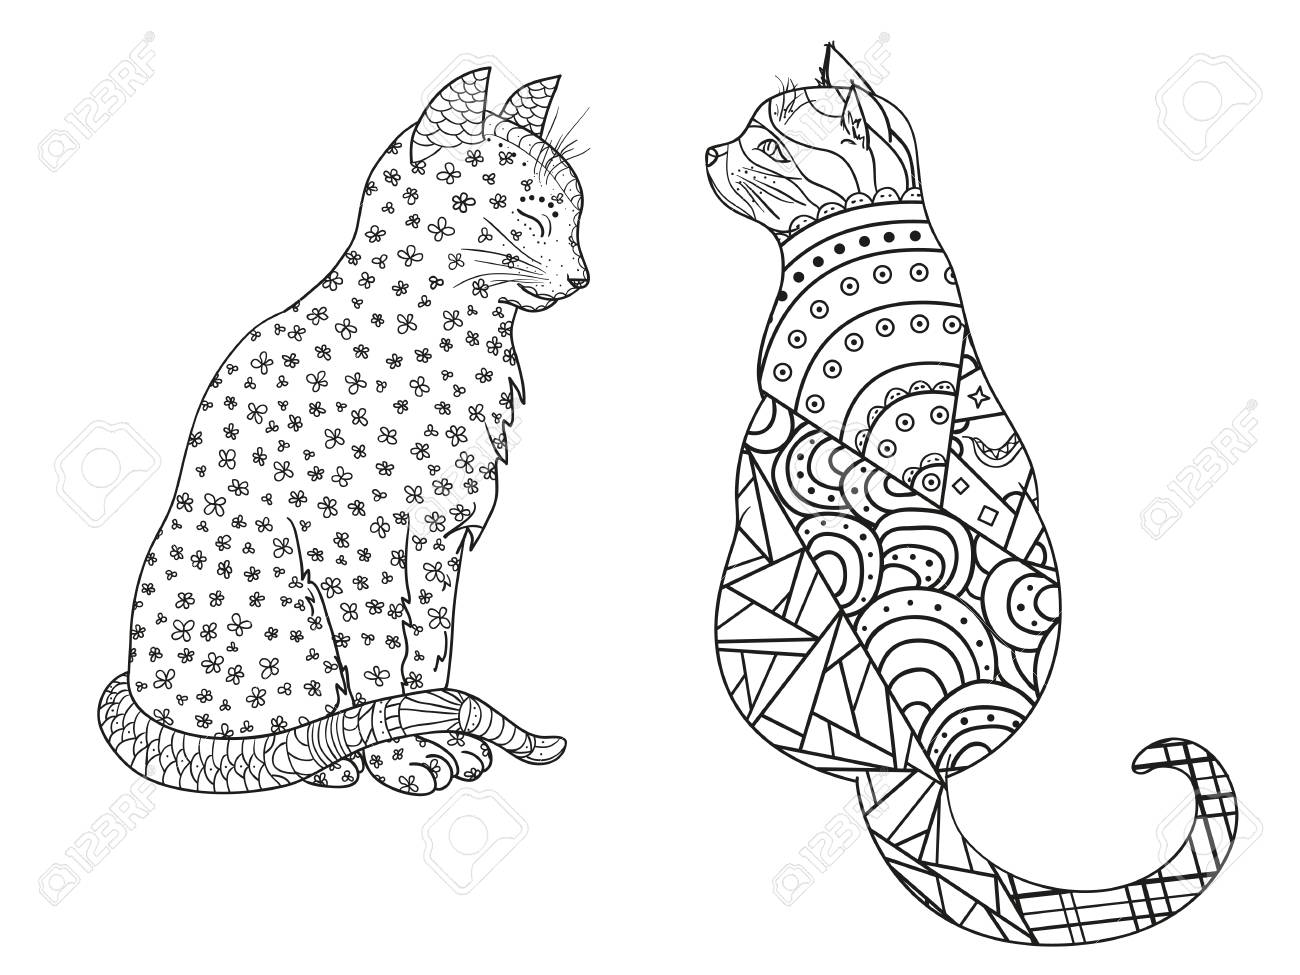 cats on white zentangle hand drawn animals with abstract patterns on isolation background design for